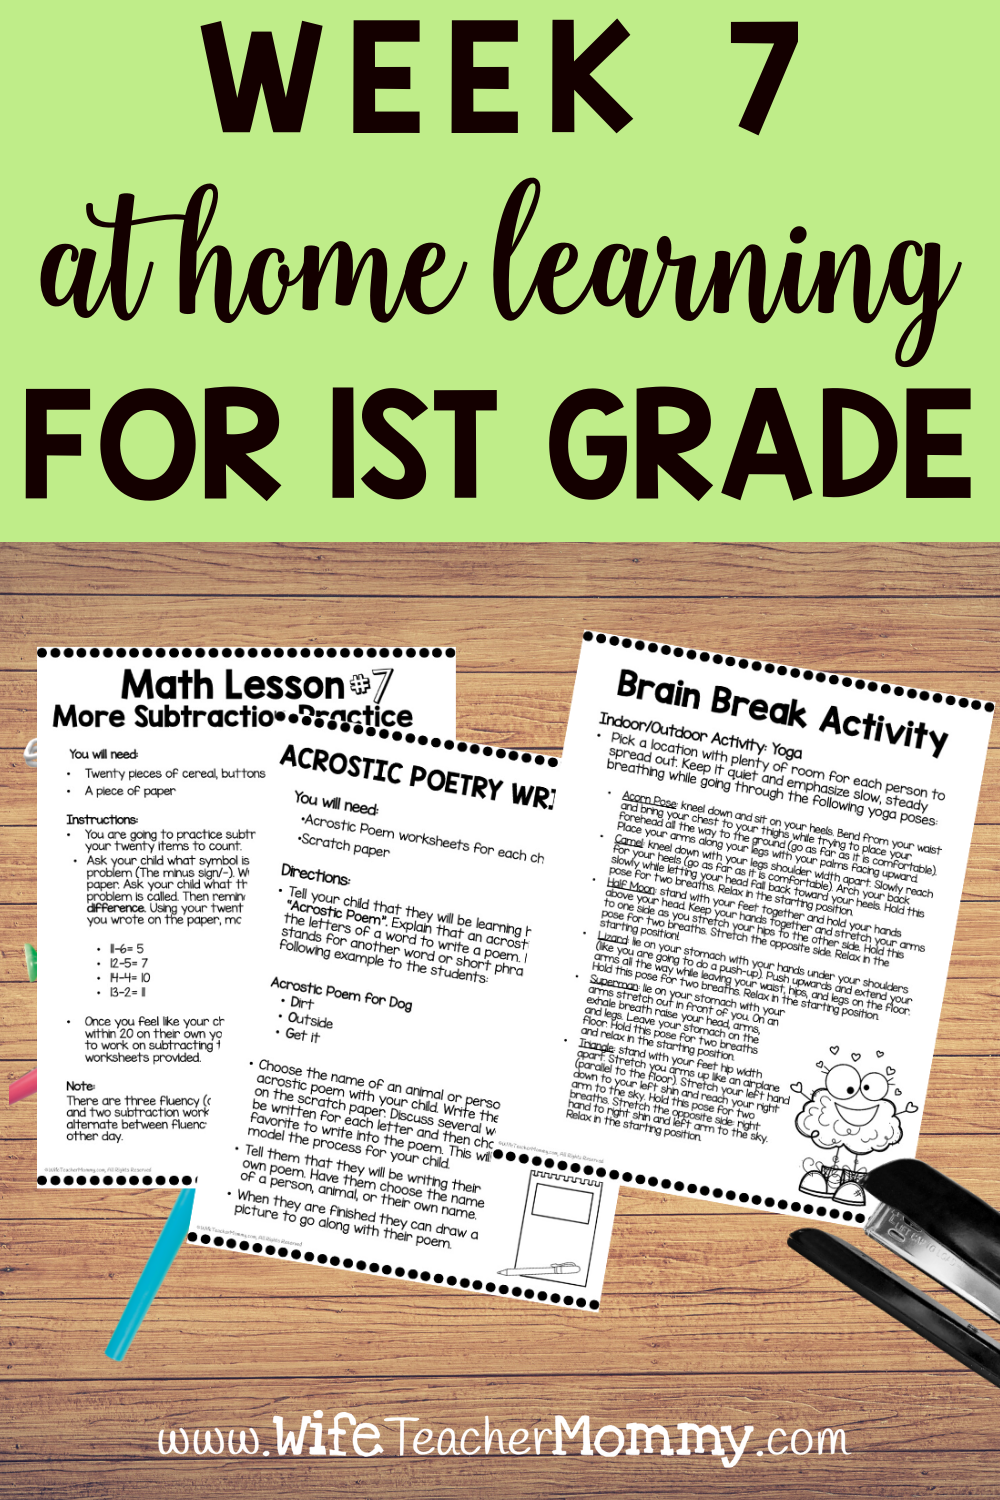 1st Grade Distance Learning Packet At Home Learning Activities Week 7 Wife Teacher Mommy Distance Learning Ist Grade Math Read To Self [ 1500 x 1000 Pixel ]